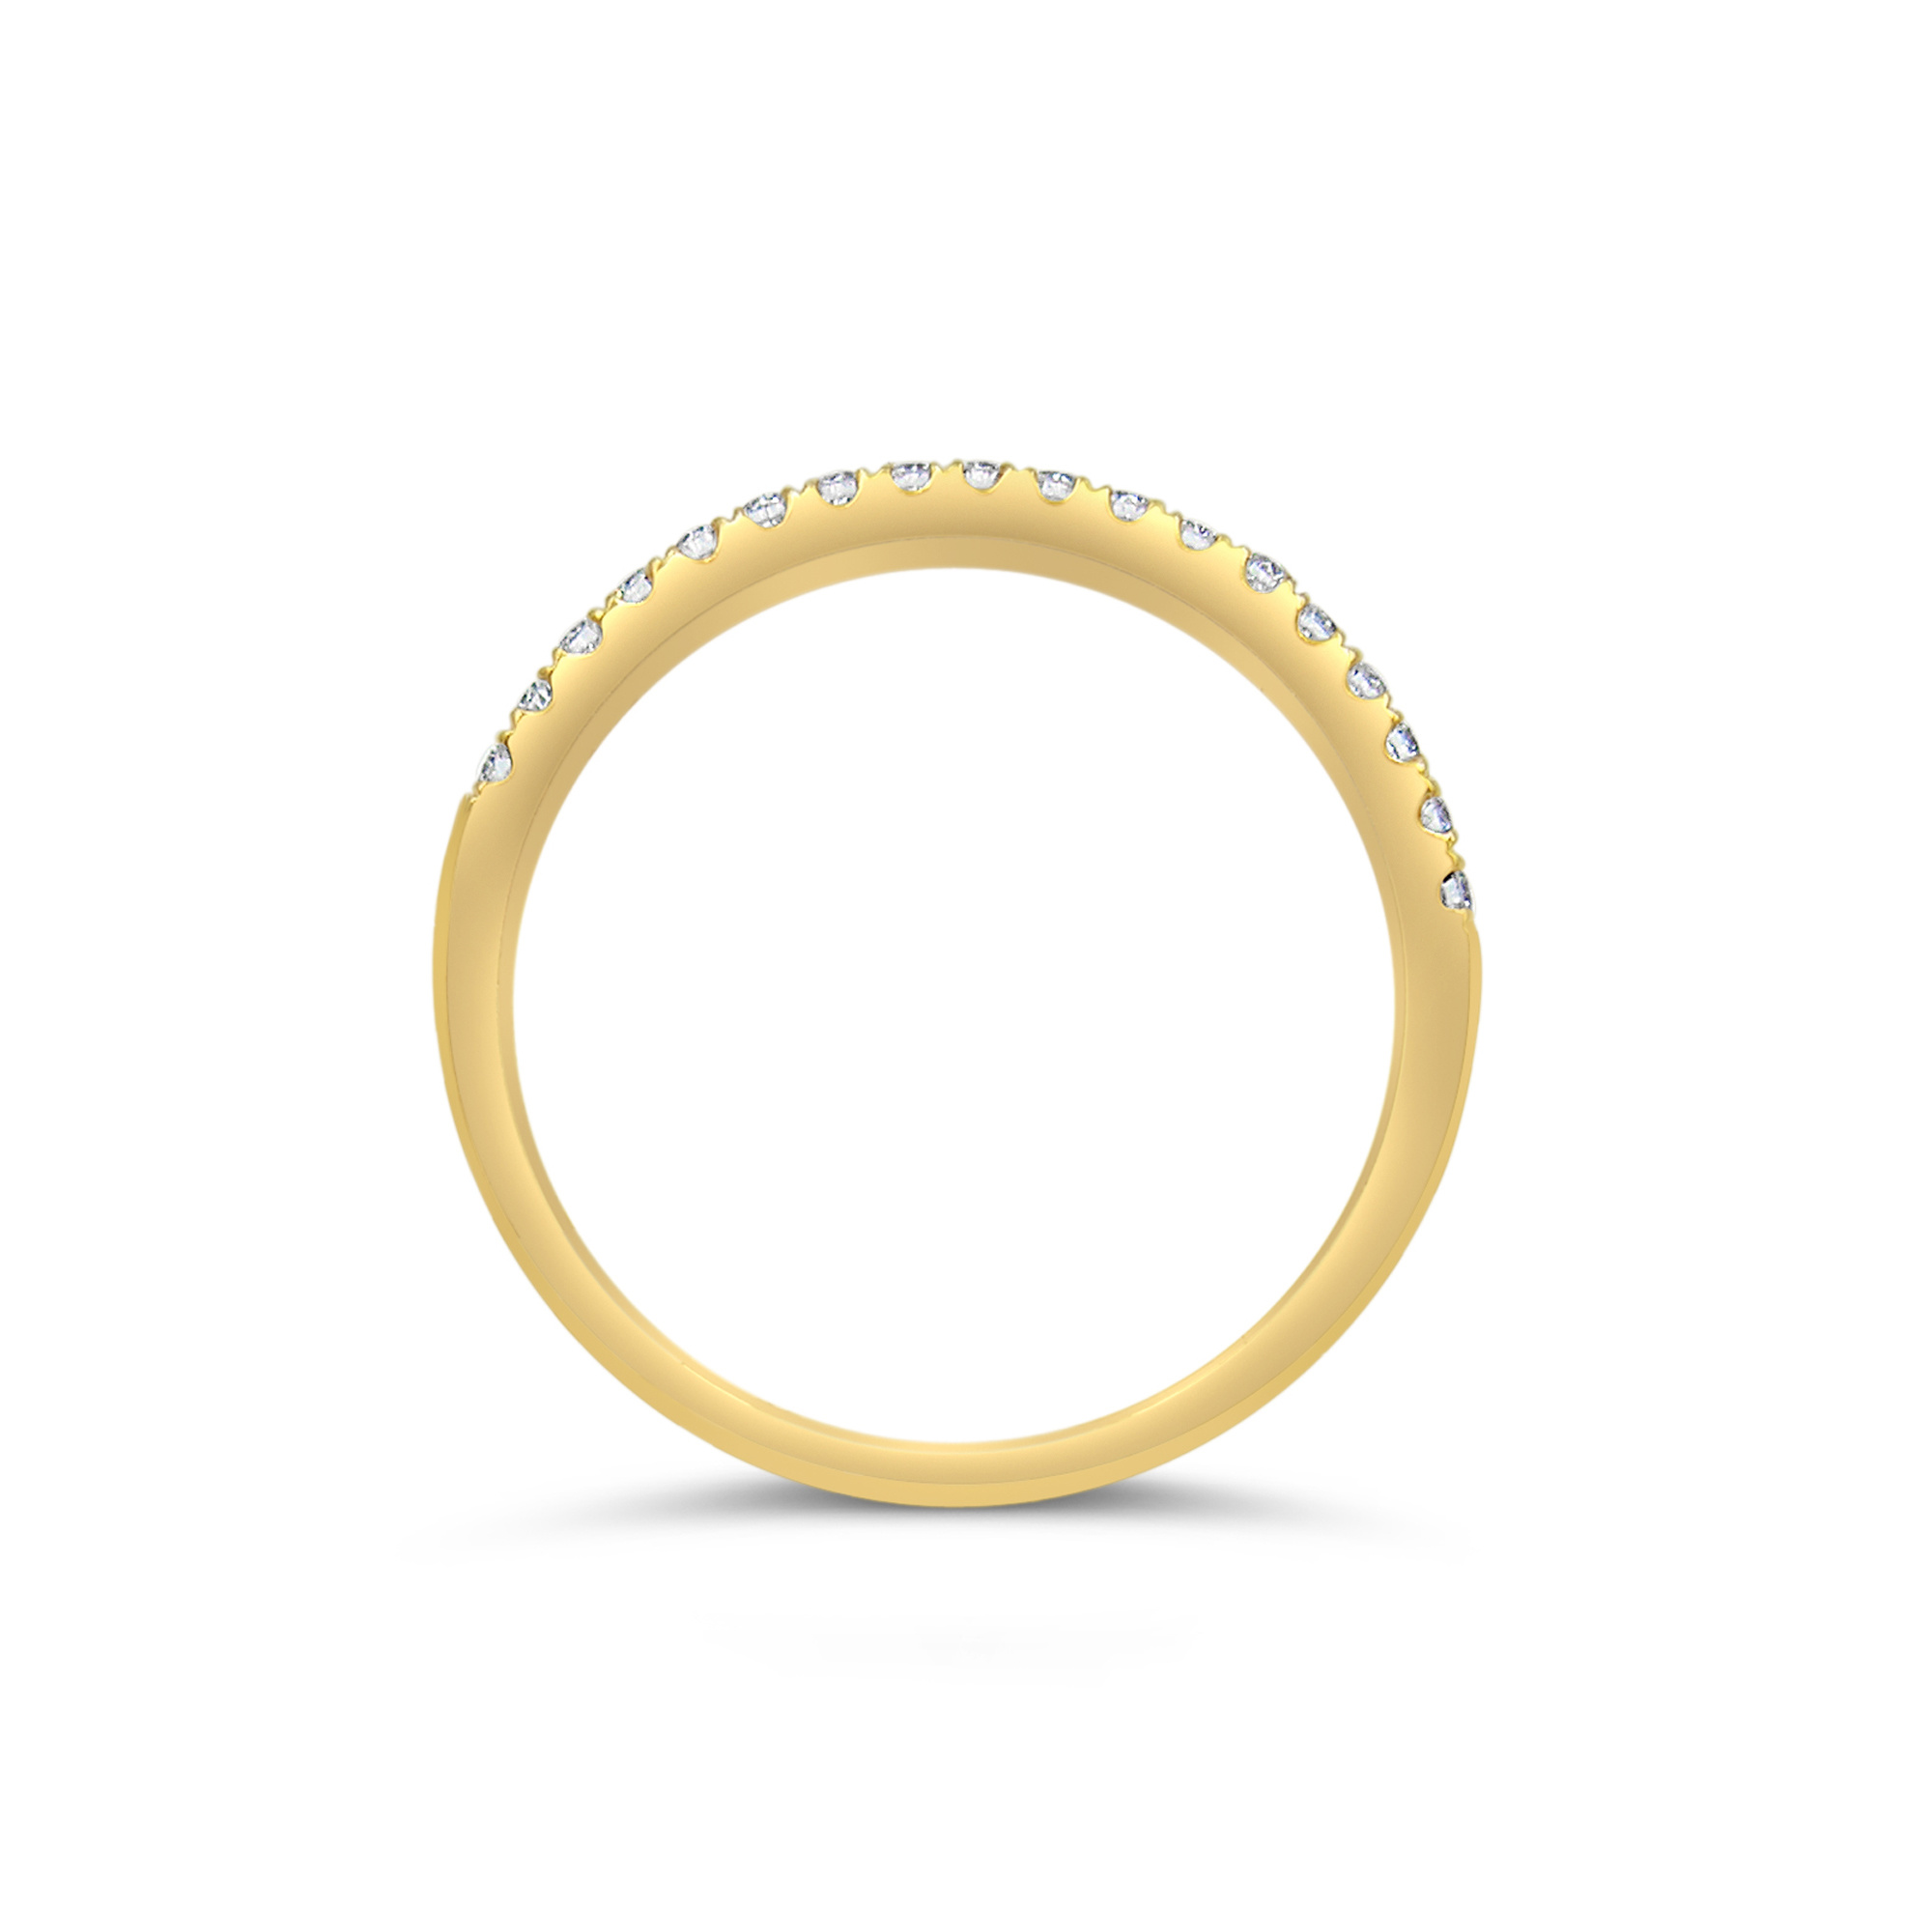 18k yellow gold ring with 0.20 ct diamonds